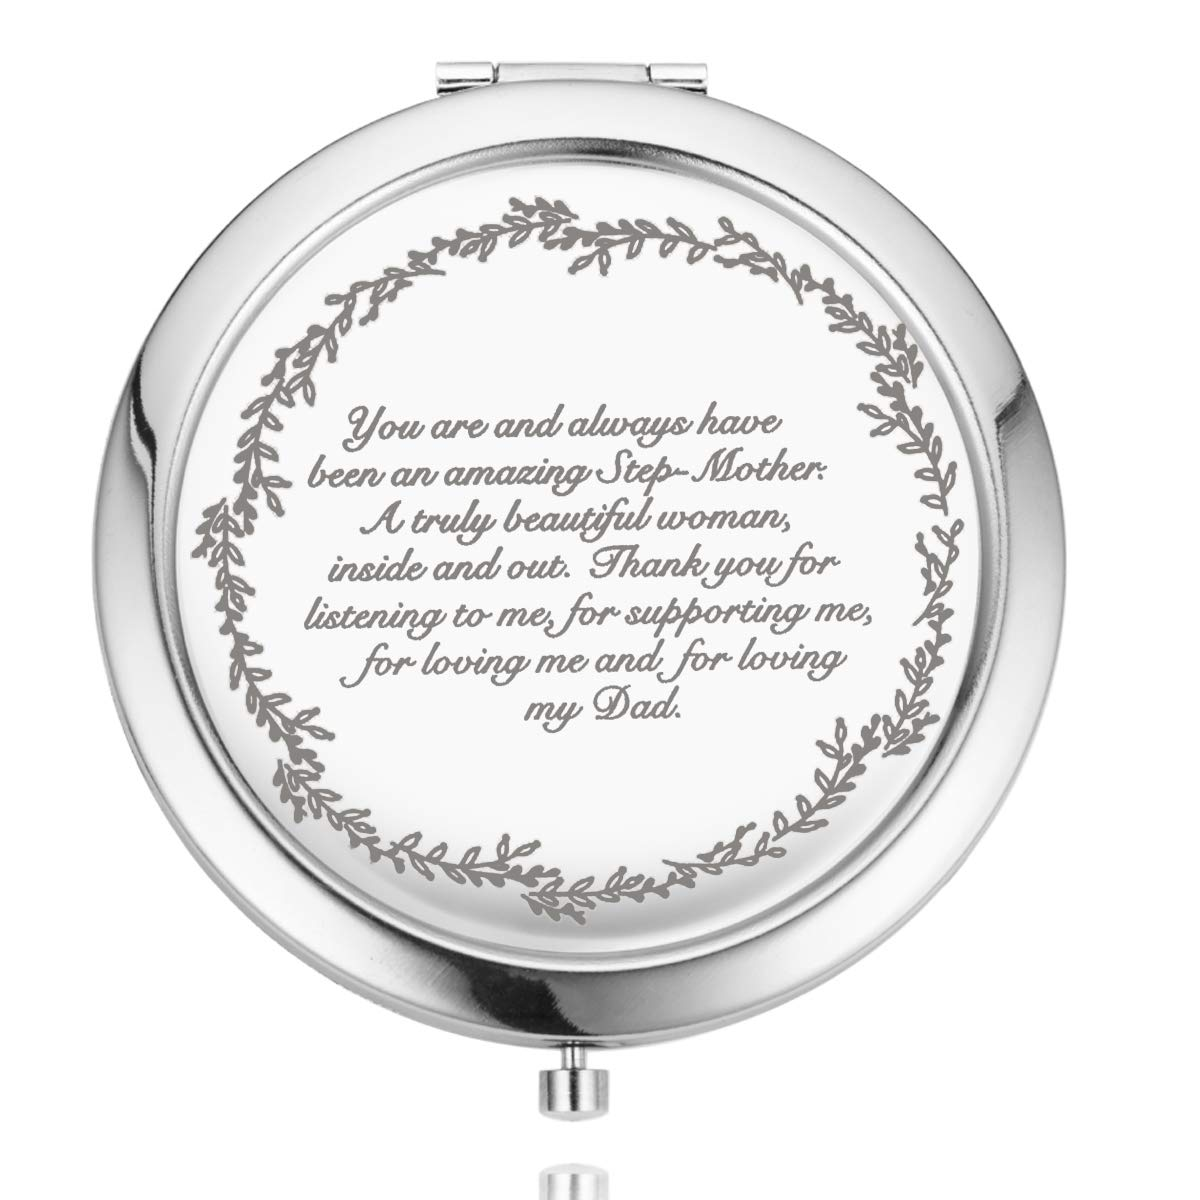 Amazon Com Uoipengyi Mom Gifts From Daughter And Son Unique Birthday Gifts For Women Mother Grandma Sister Aunt Gift Ideas For Christmas Pocket Makeup Mirror To My Step Mother Furniture Decor